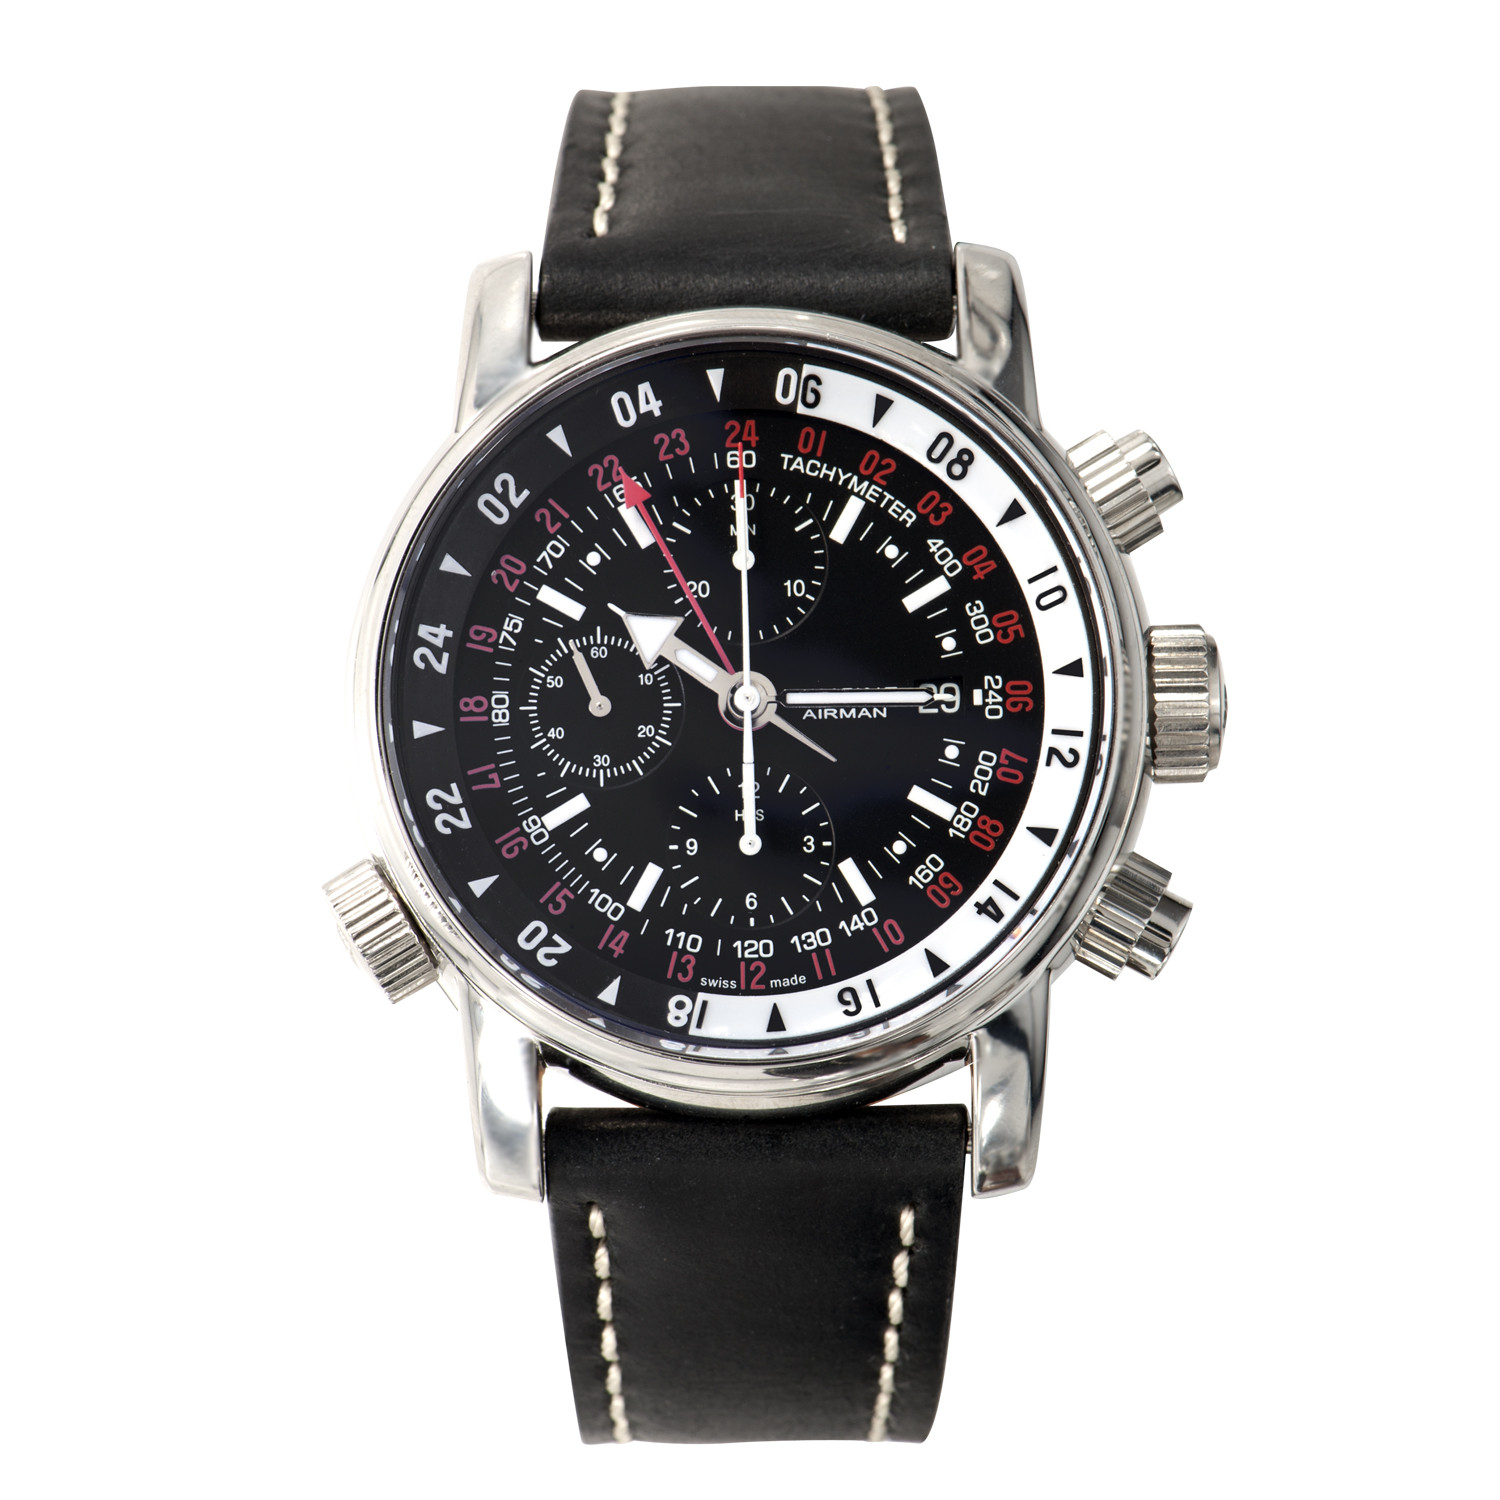 08: Glycine Airman 08 Chrono // GMT Non-Purist Limited Edition